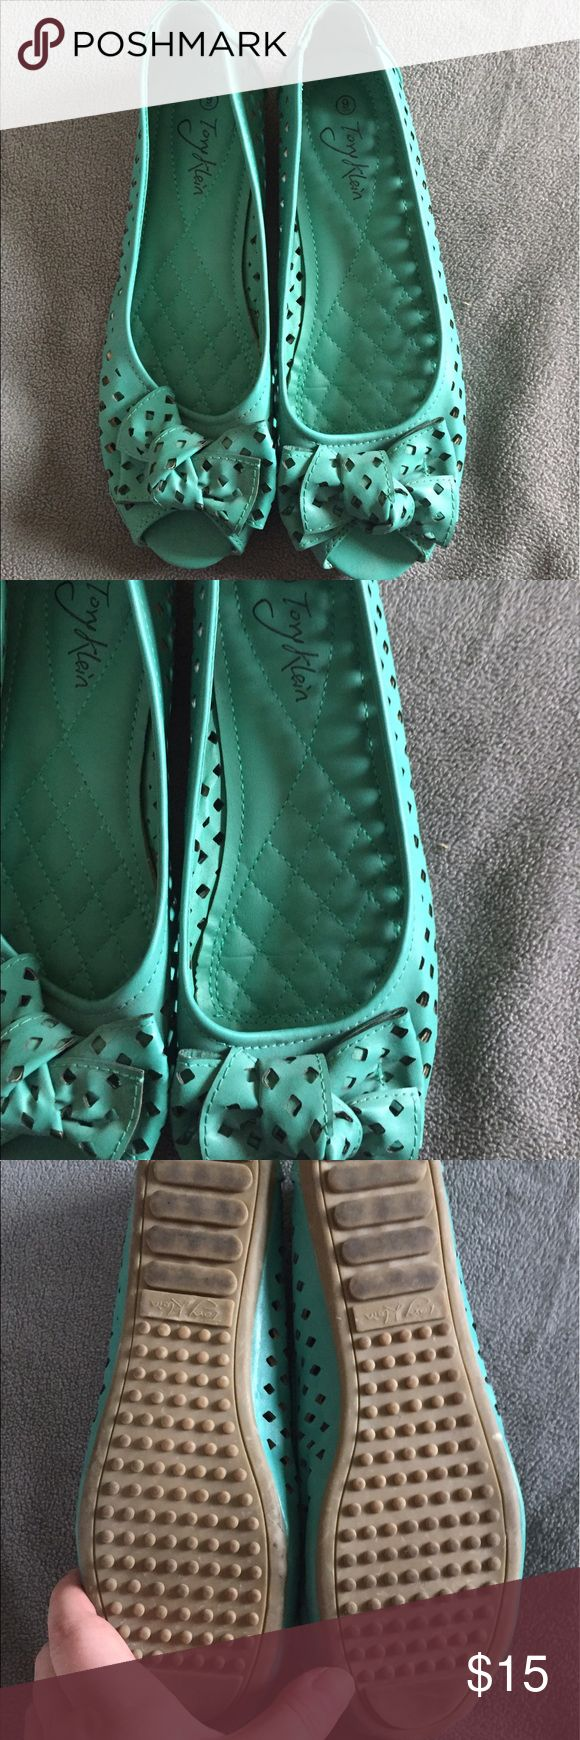 Tory Klein turquoise peep toe flats - size 9 Tory Klein turquoise peep toe flats - size 9. Super cute and comfy shoe - only worn a few times. Cut outs on shoe and bow at the top of shoe. Shoes Flats & Loafers